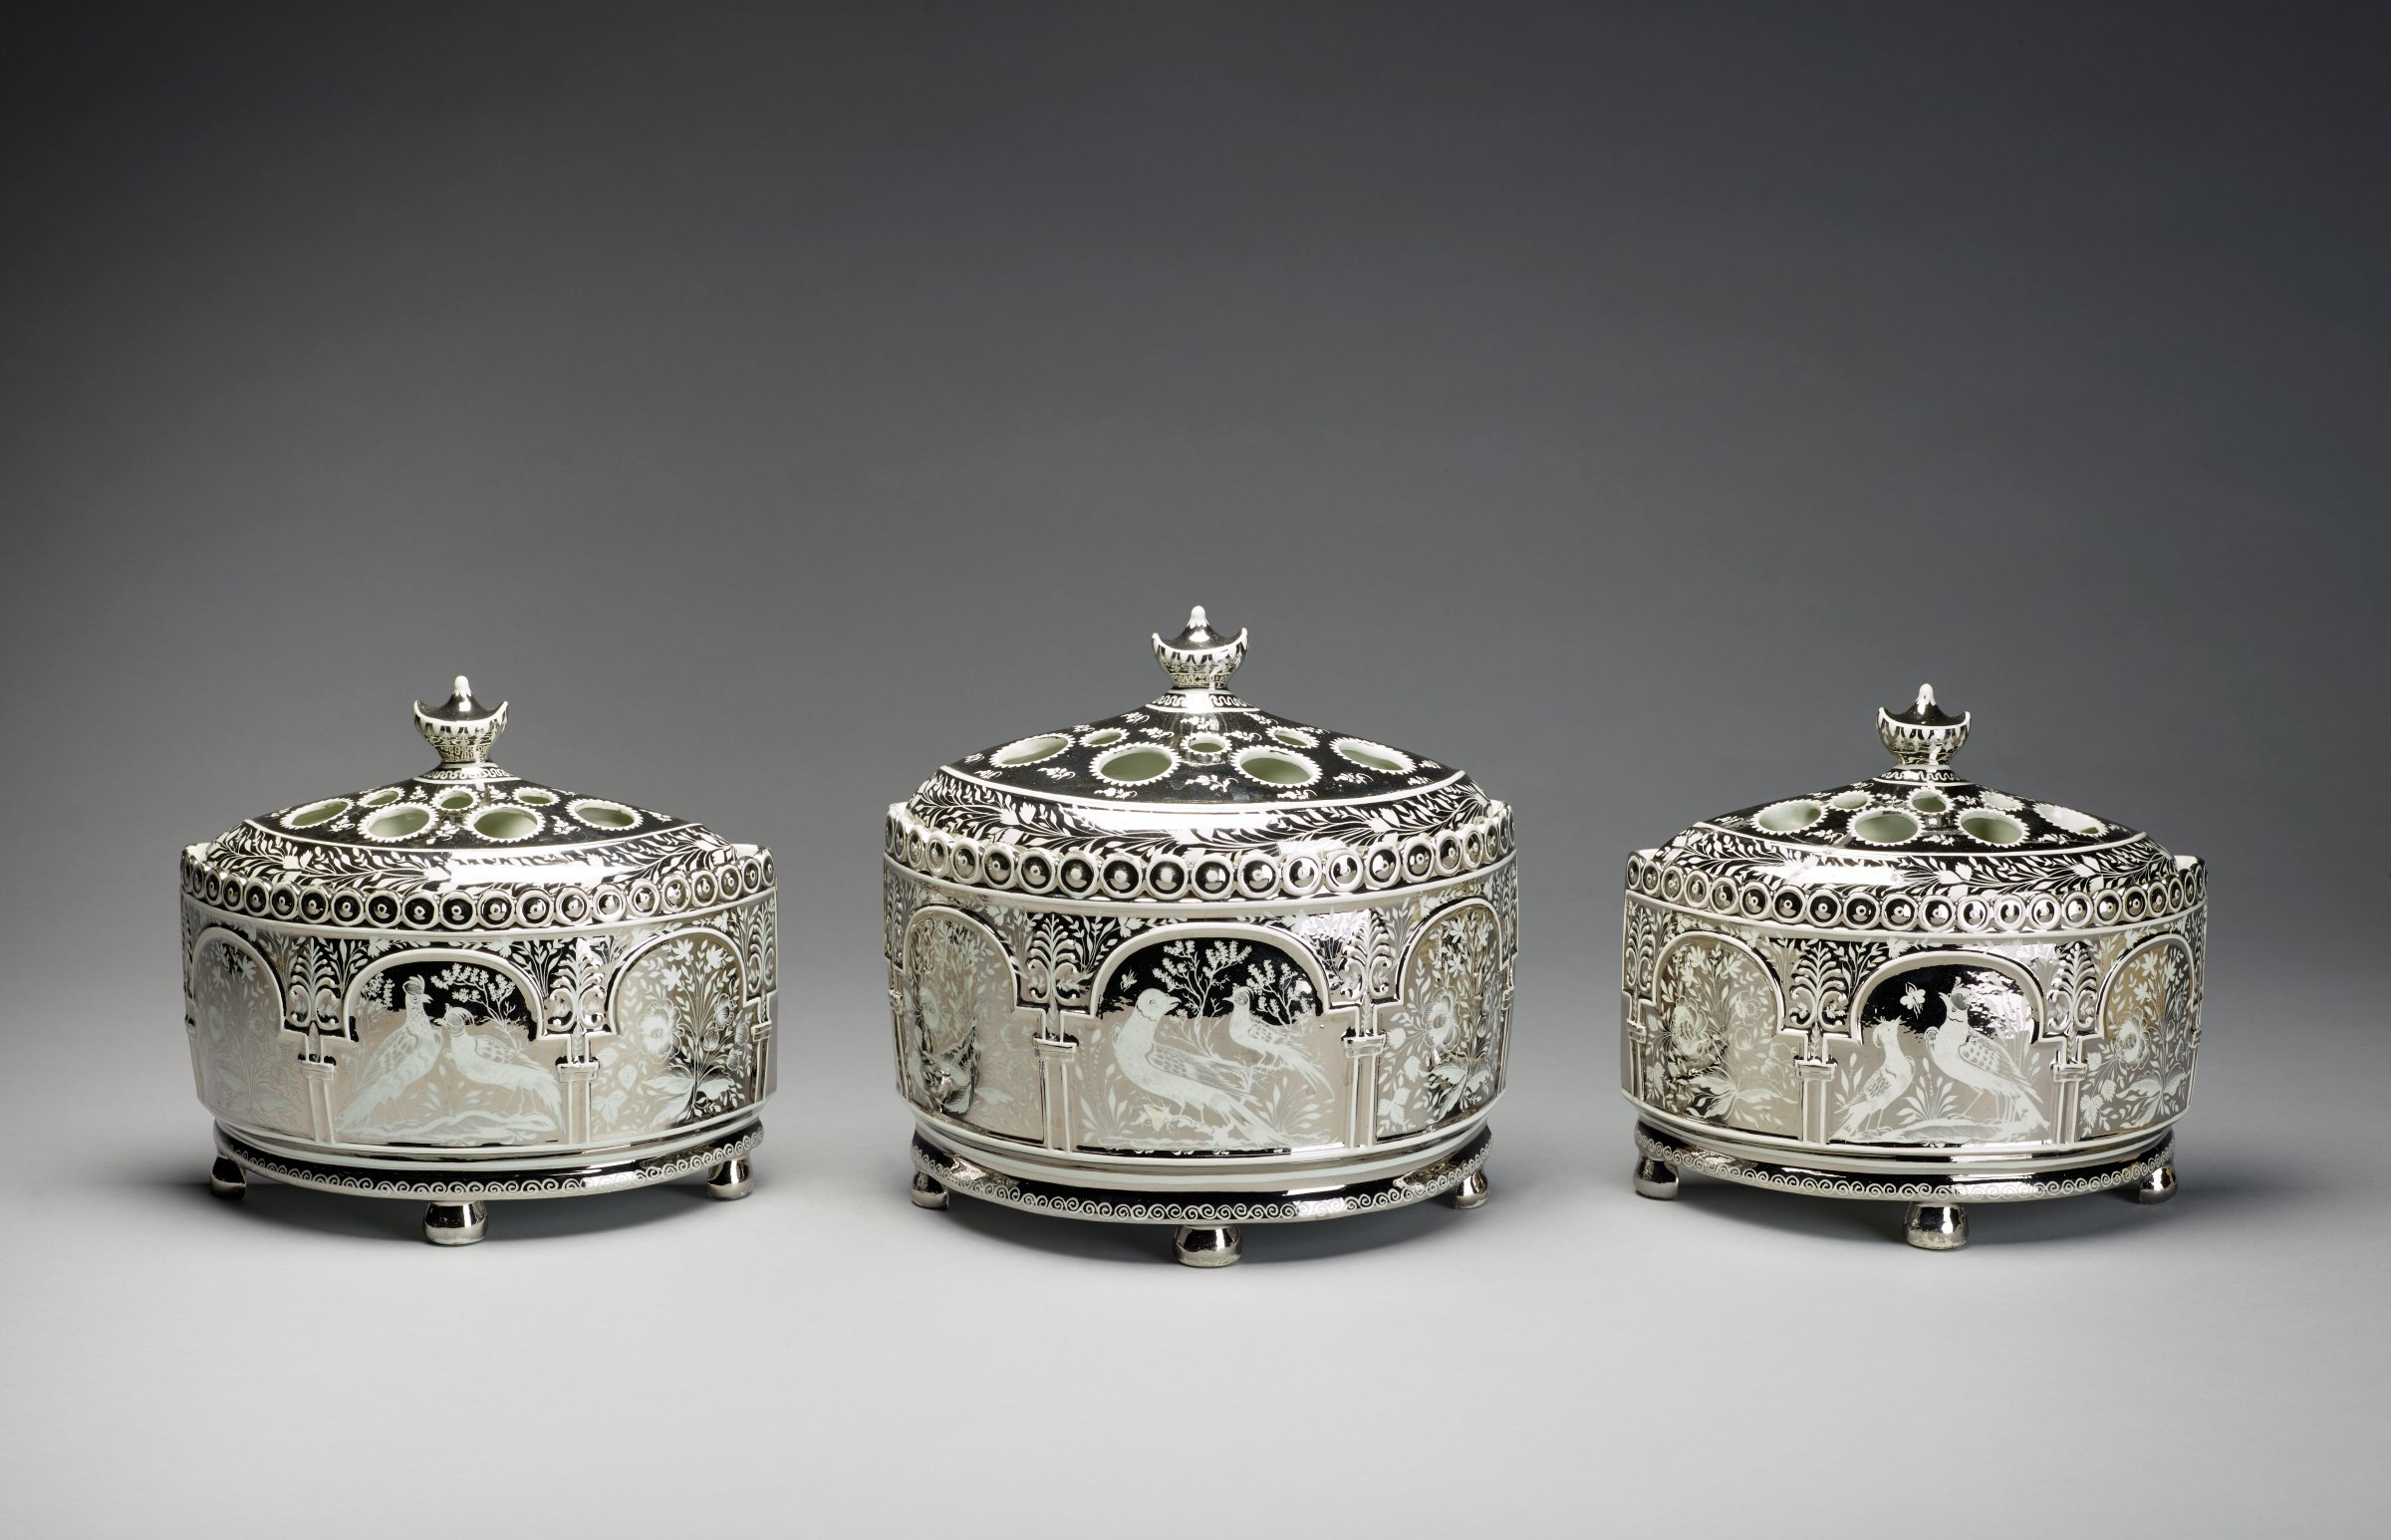 Three-piece bough-pot garniture of creamware covered with a pearl glaze, each of D-shape with convex fronts and flat backs, each resting on three ball feet, the bodies decorated only on the front with silver resist lustre in a pattern of three arches decorated with typical Leeds-style birds and foliage, with a border of repeating circles above, the covers pierced with both large and small holes, with urn-shaped finials.